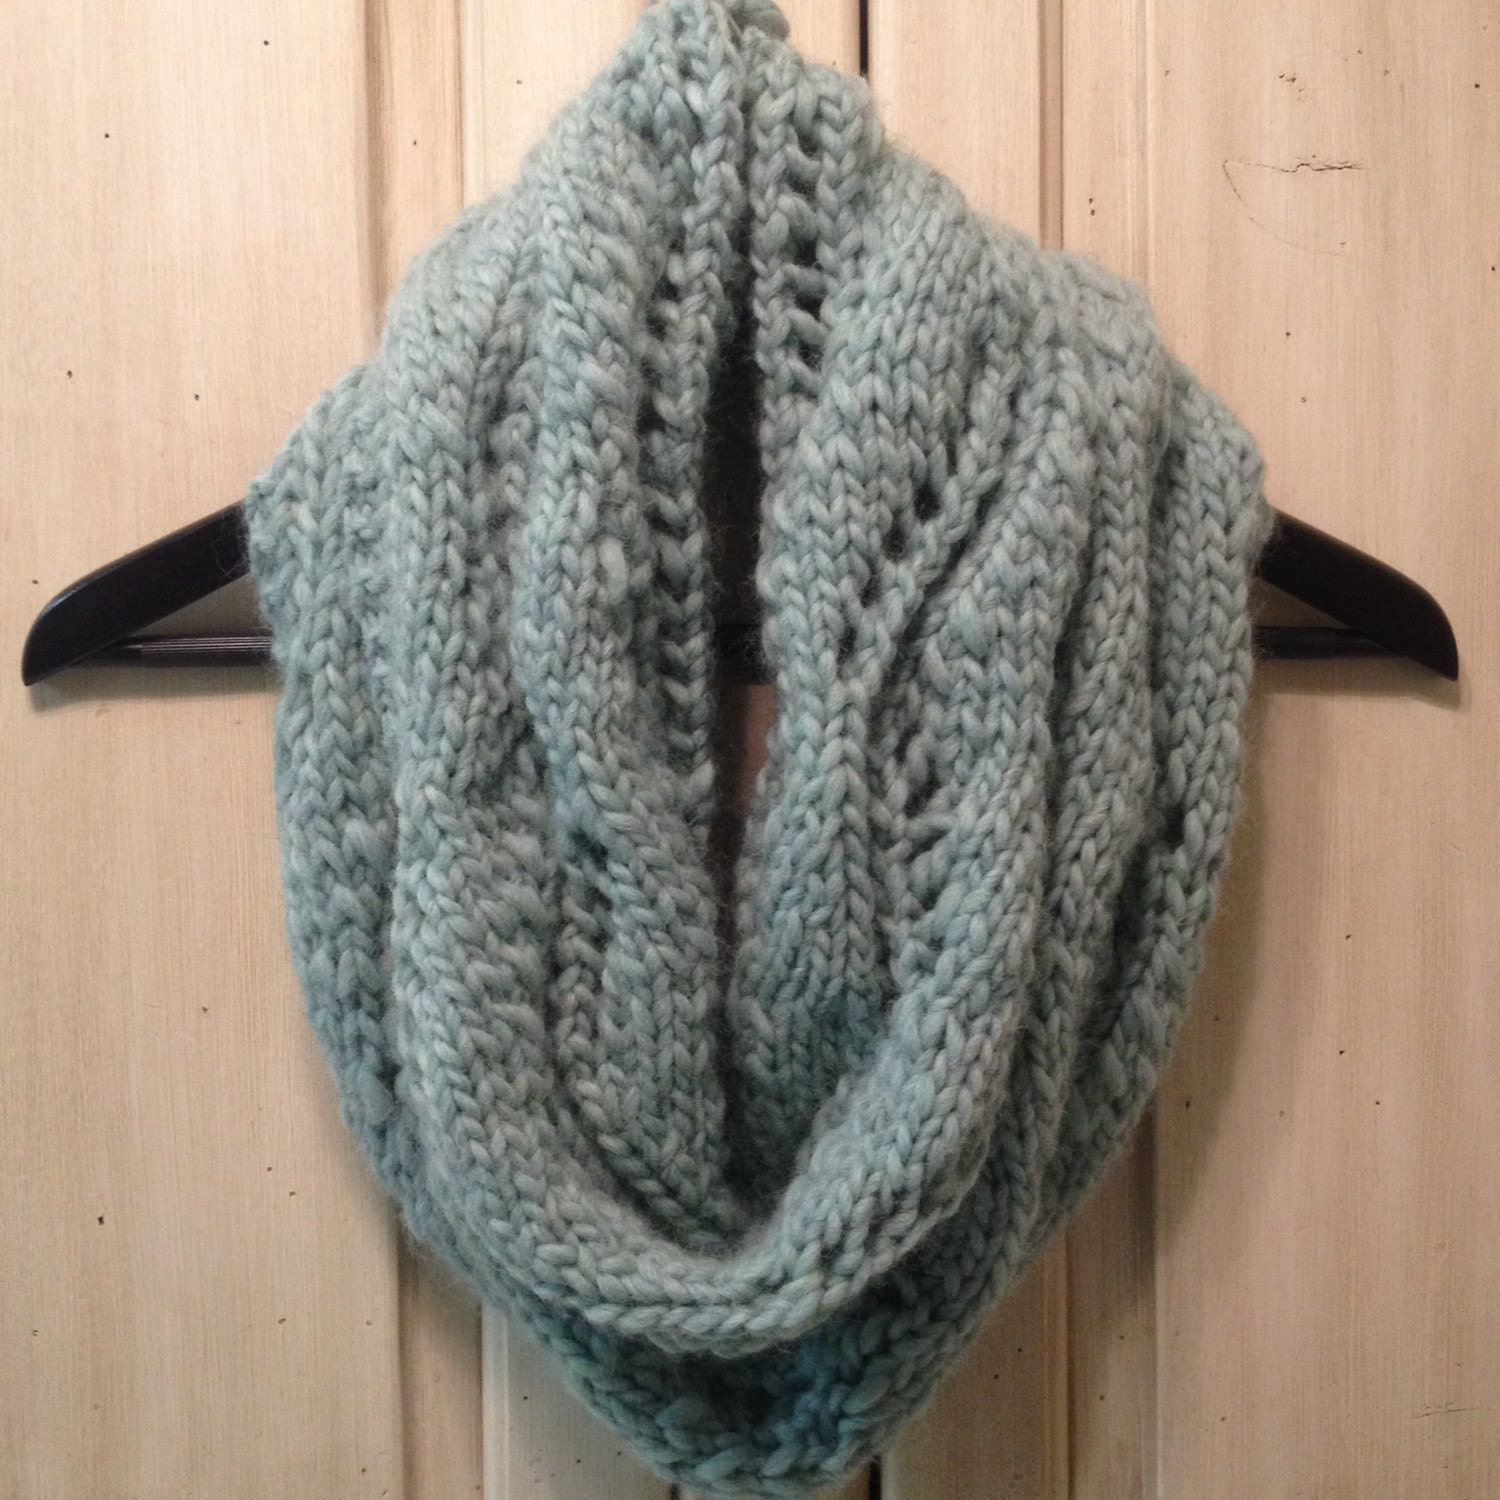 Chevron Lace Pattern Chunky Knit Infinity Scarf by EllieDeeDesigns